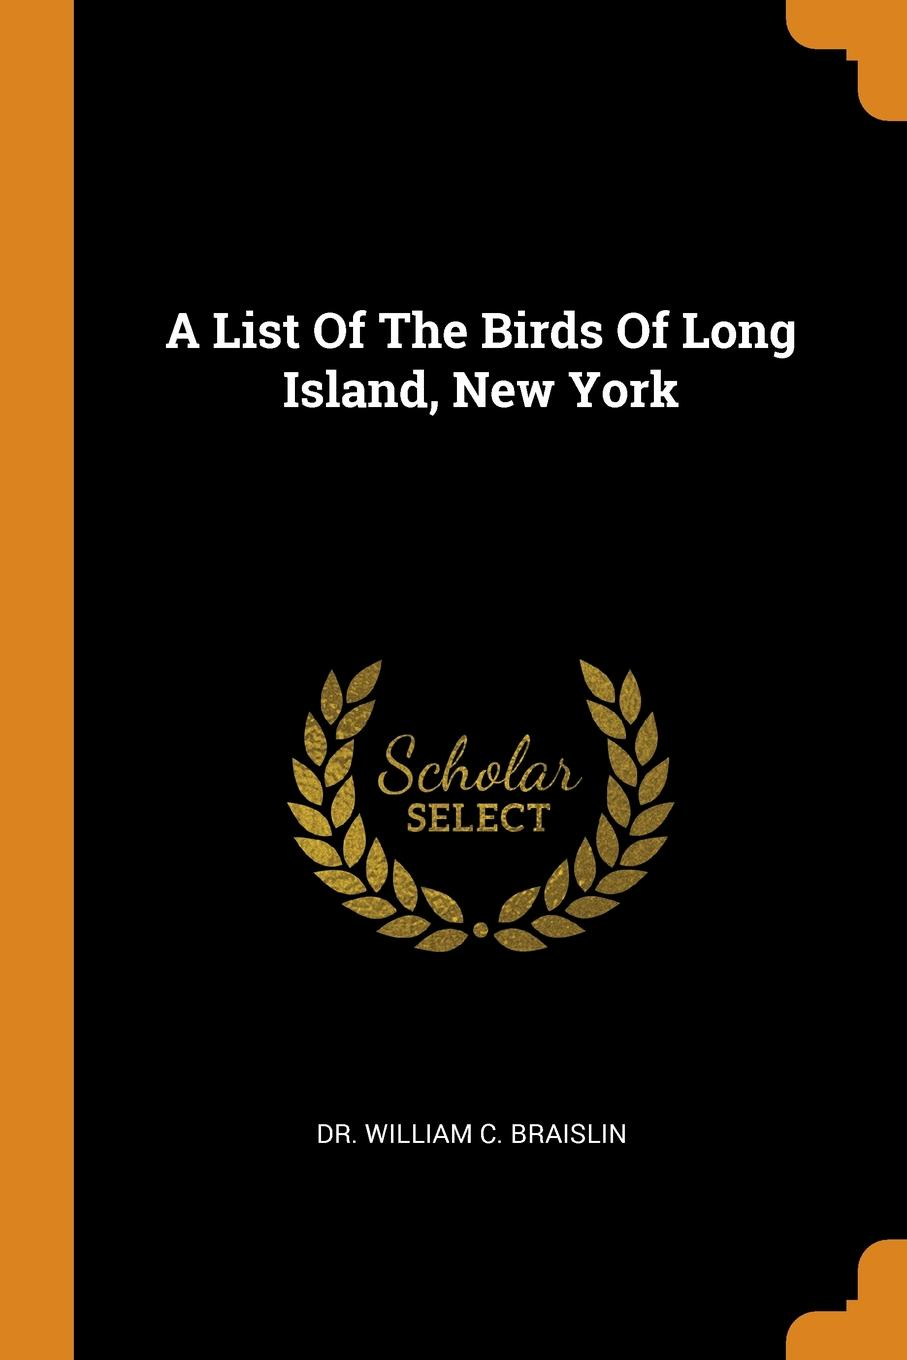 A List Of The Birds Of Long Island, New York